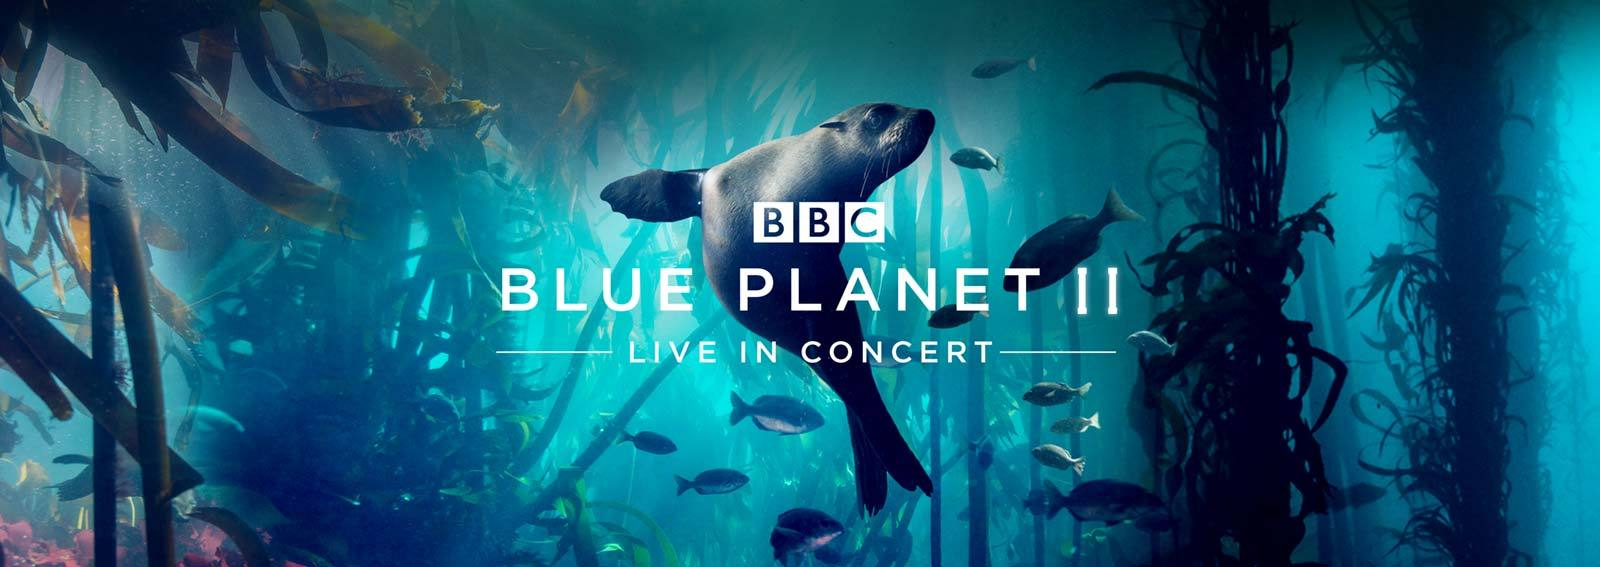 Blue Planet Live in Concert